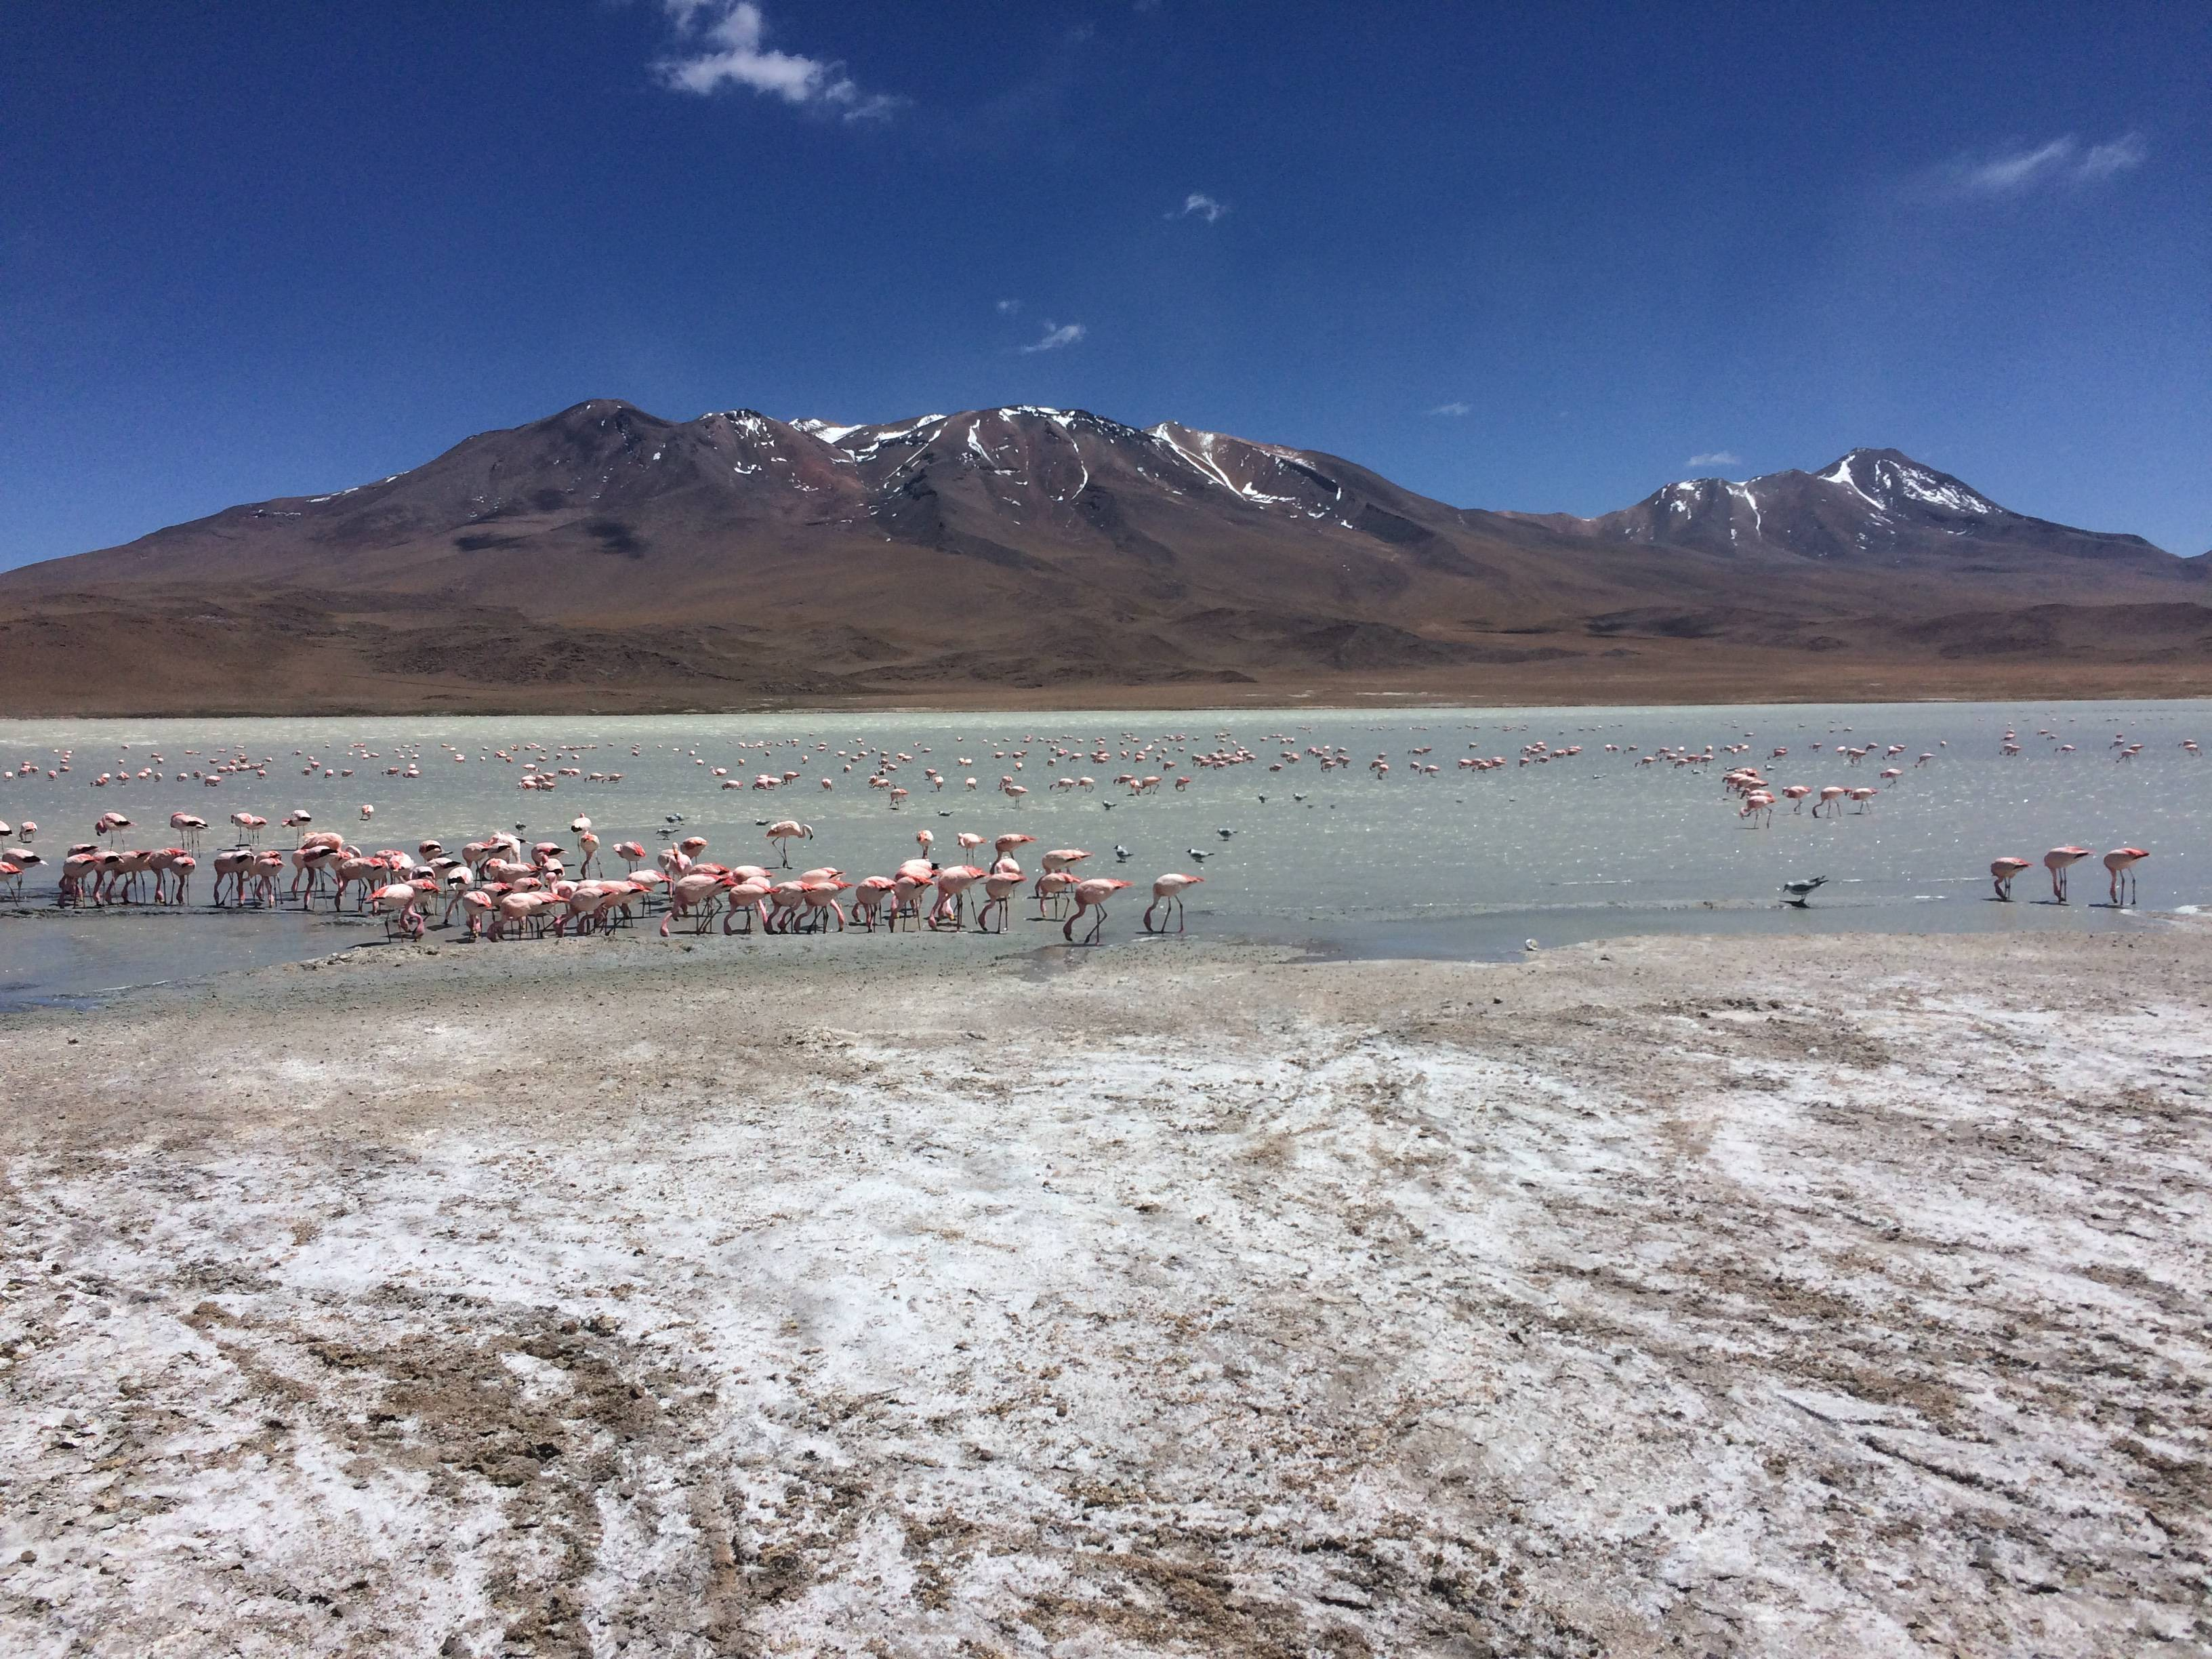 Photo 2: Salar d'Uyuni et Sud-Lipez